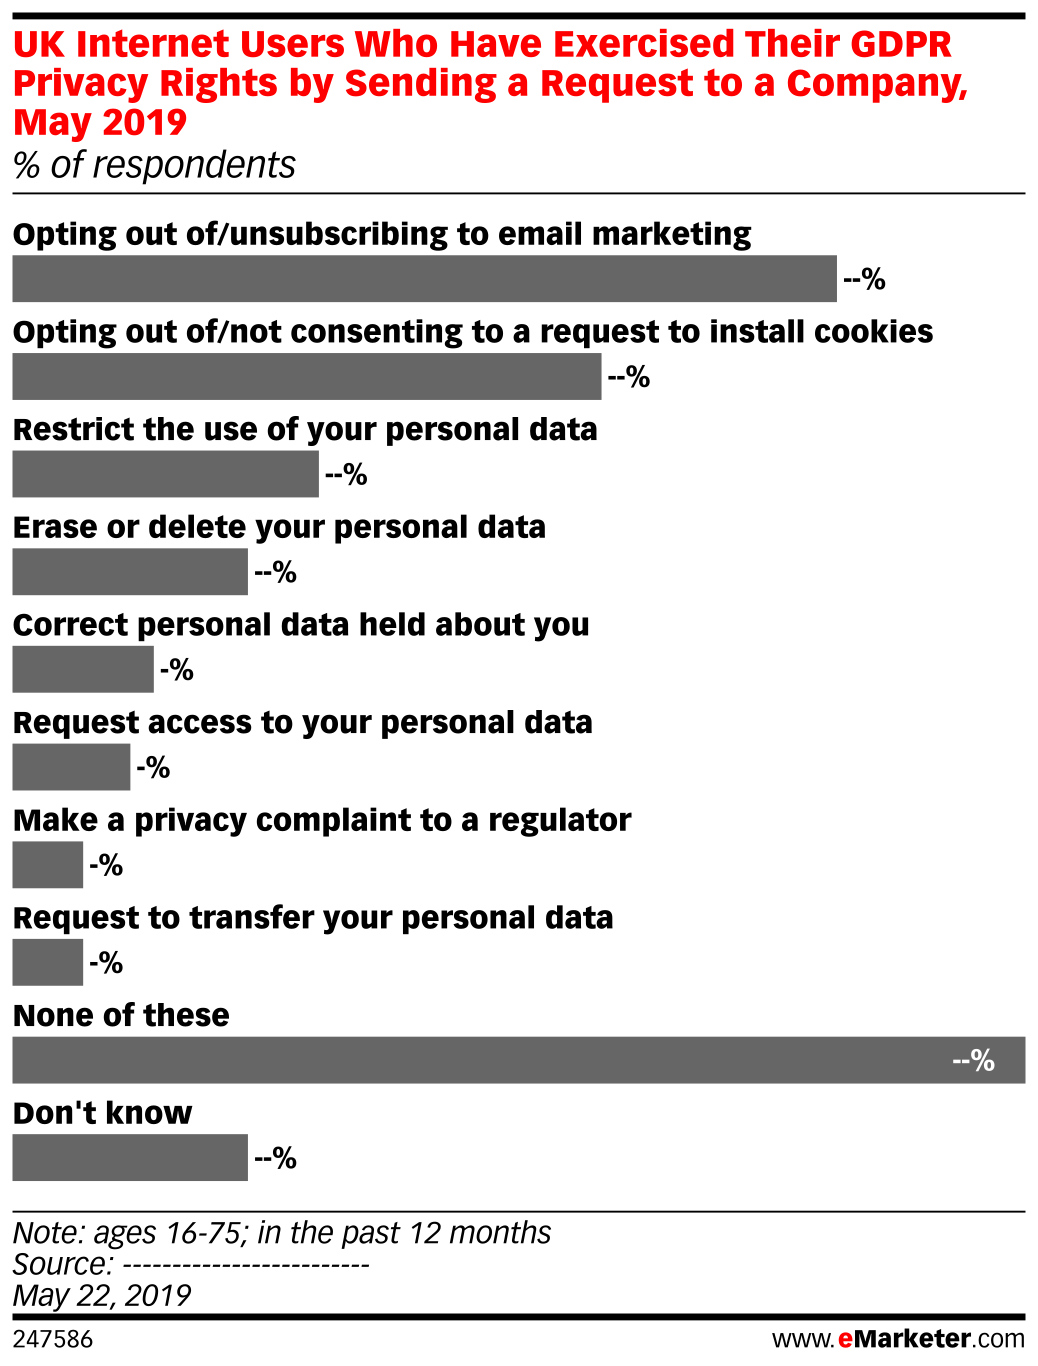 UK Internet Users Who Have Exercised Their GDPR Privacy Rights by Sending a Request to a Company, May 2019 (% of respondents)